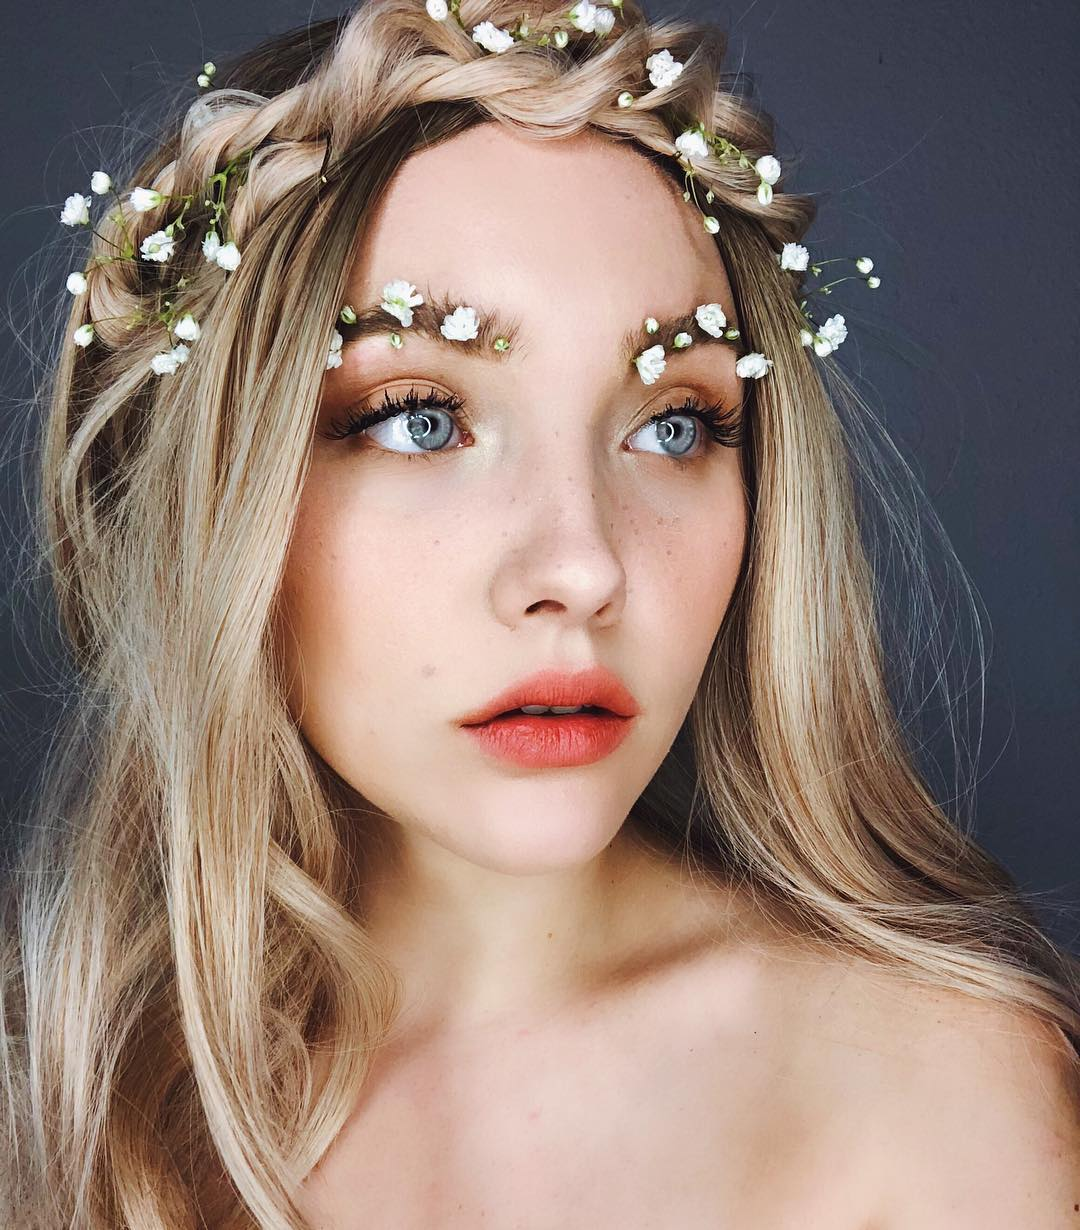 weird beauty trends from 2018 - floral brows